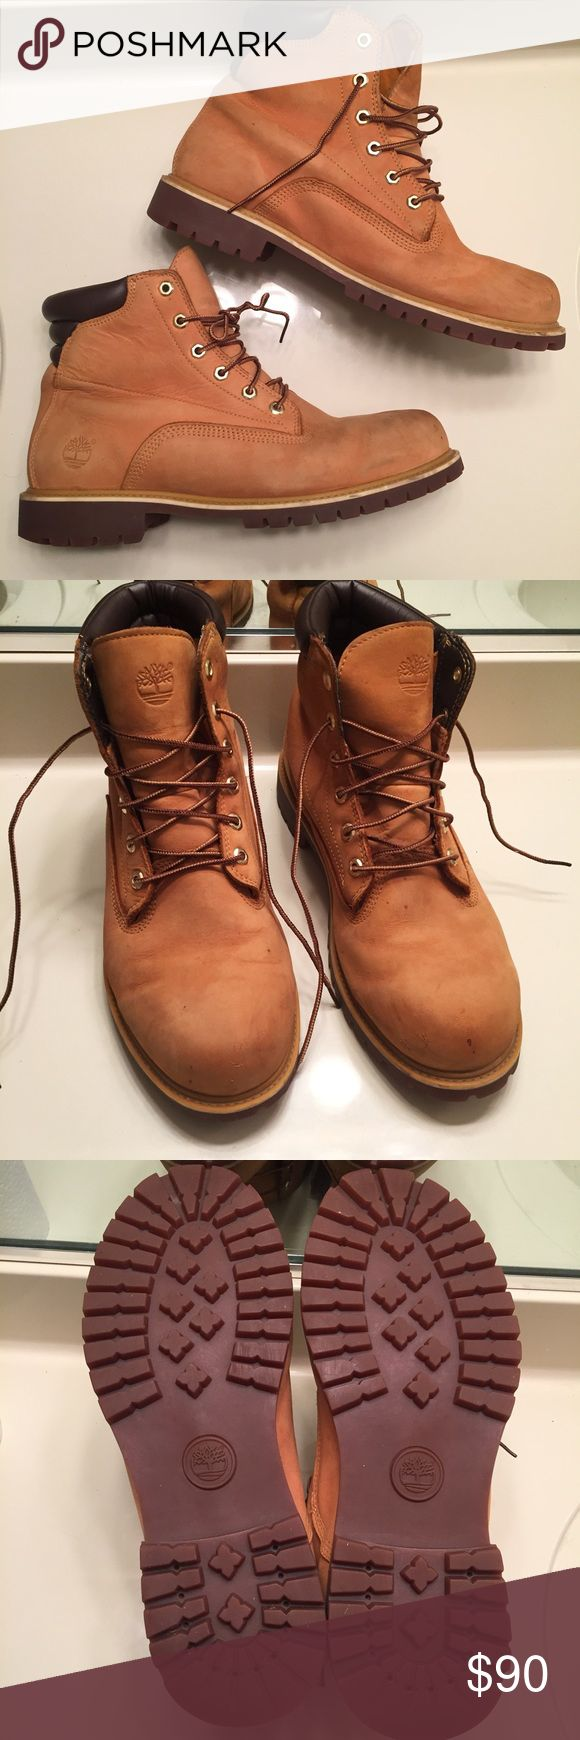 Authentic Timerland genuine leather boots size 12 Genuine leather authentic classic Timberland boots for men size 12. Have been worn a few times with some minor scuffs and stains but are in good condition. Timberland Shoes Boots